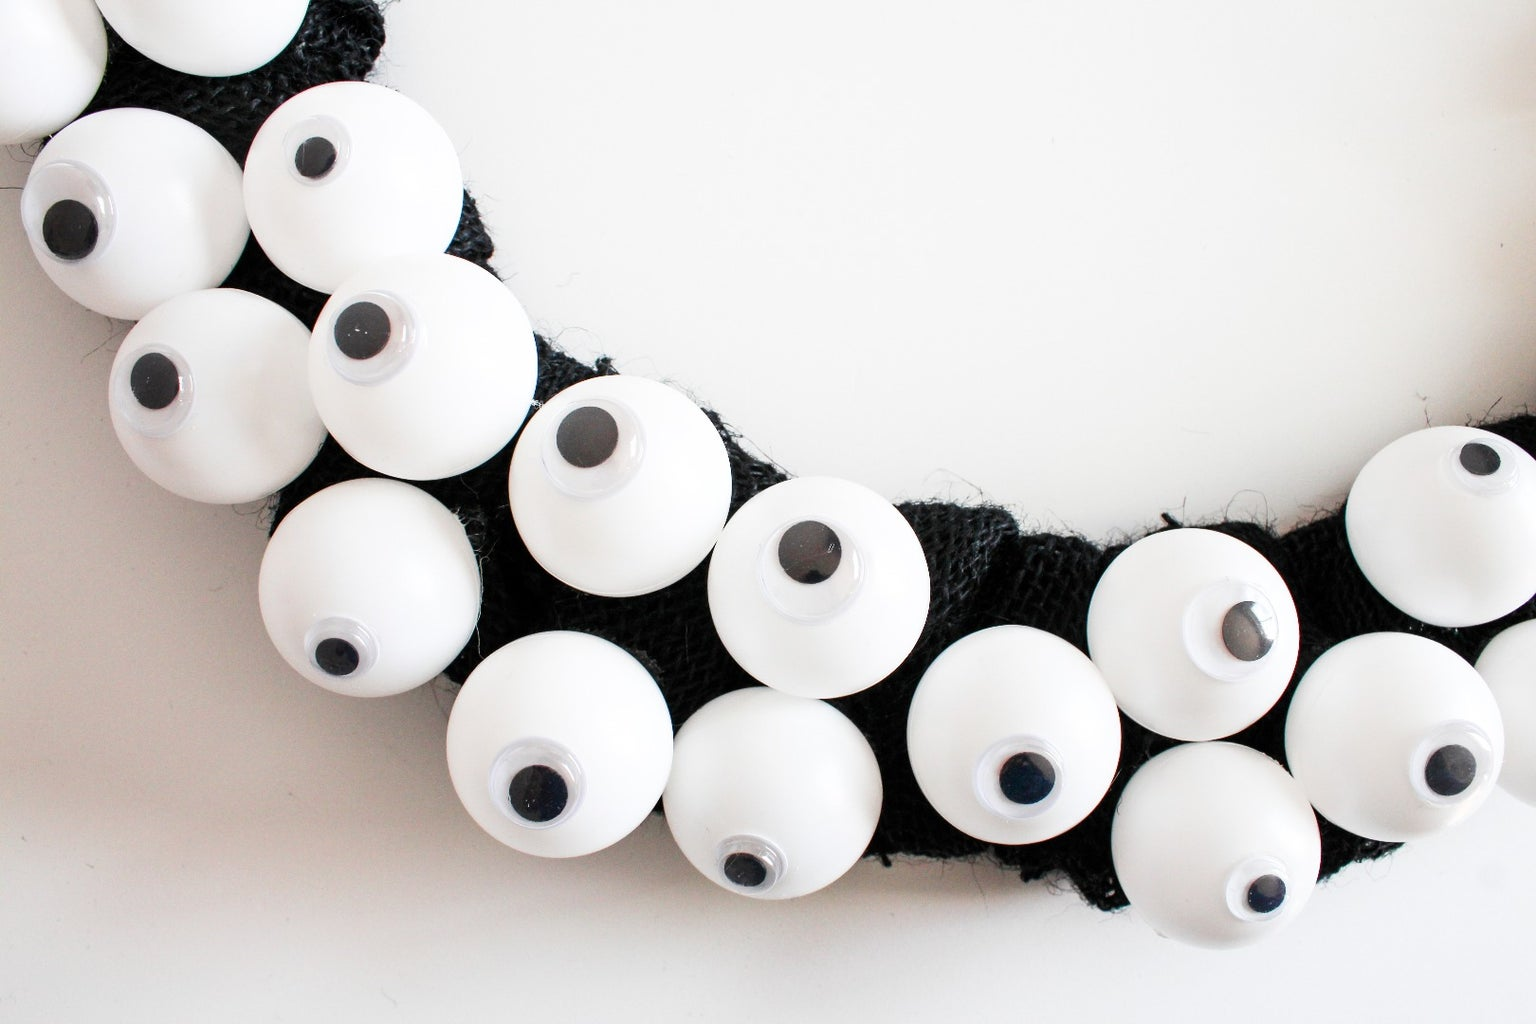 Attach the Eyeballs to the Wreath